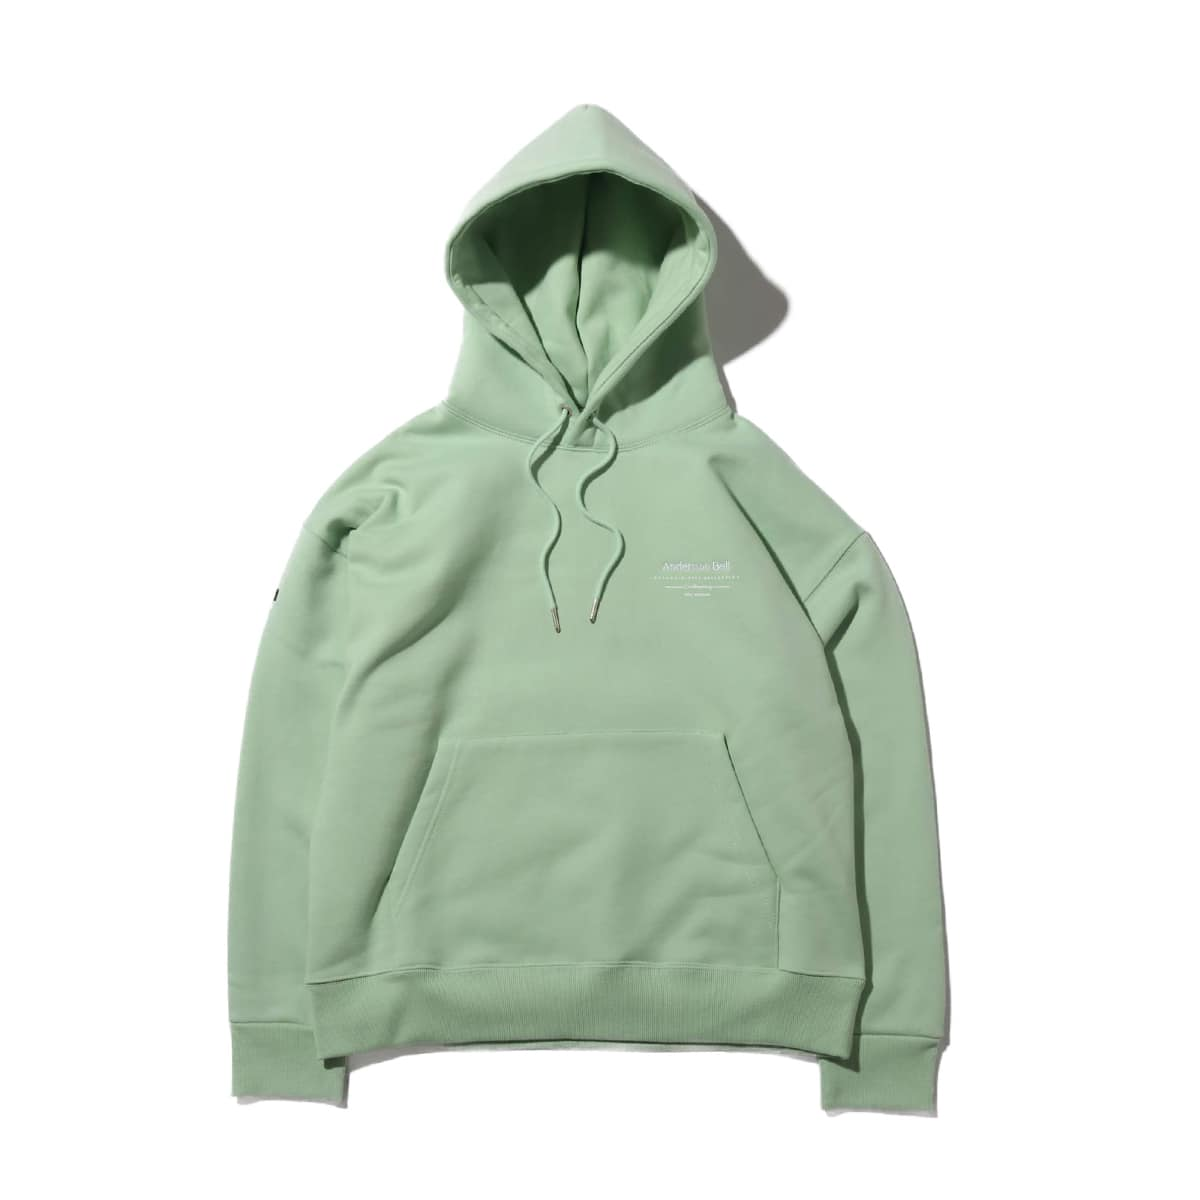 Andersson Bell UNISEX FULL NAME LOGO EMBROIDERY HOODIE PALE JADE 19FA-I_photo_large